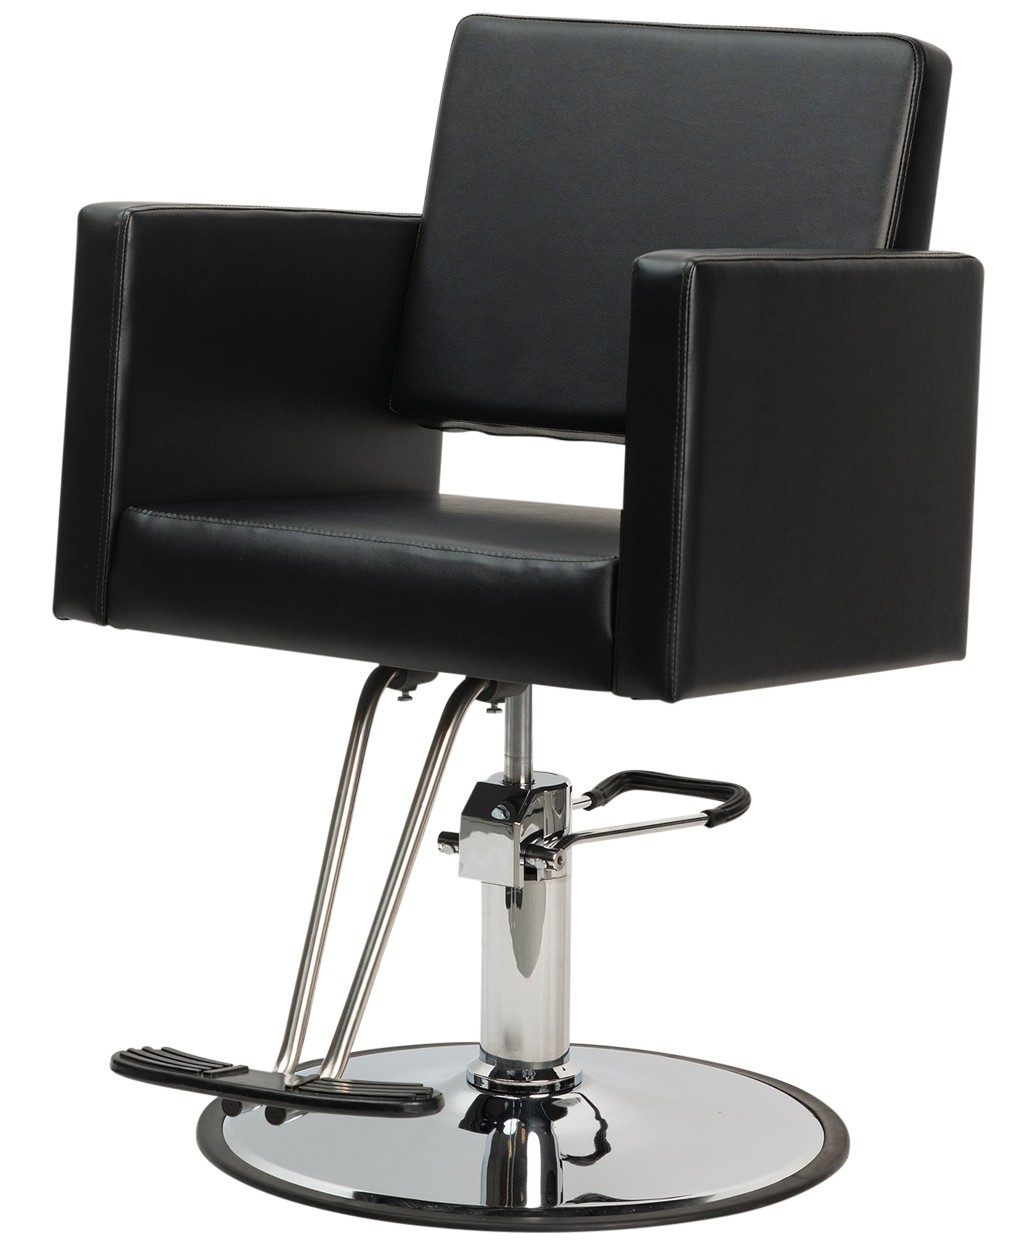 4 Operator Allegro Gold Salon Package Aria Styling Chair